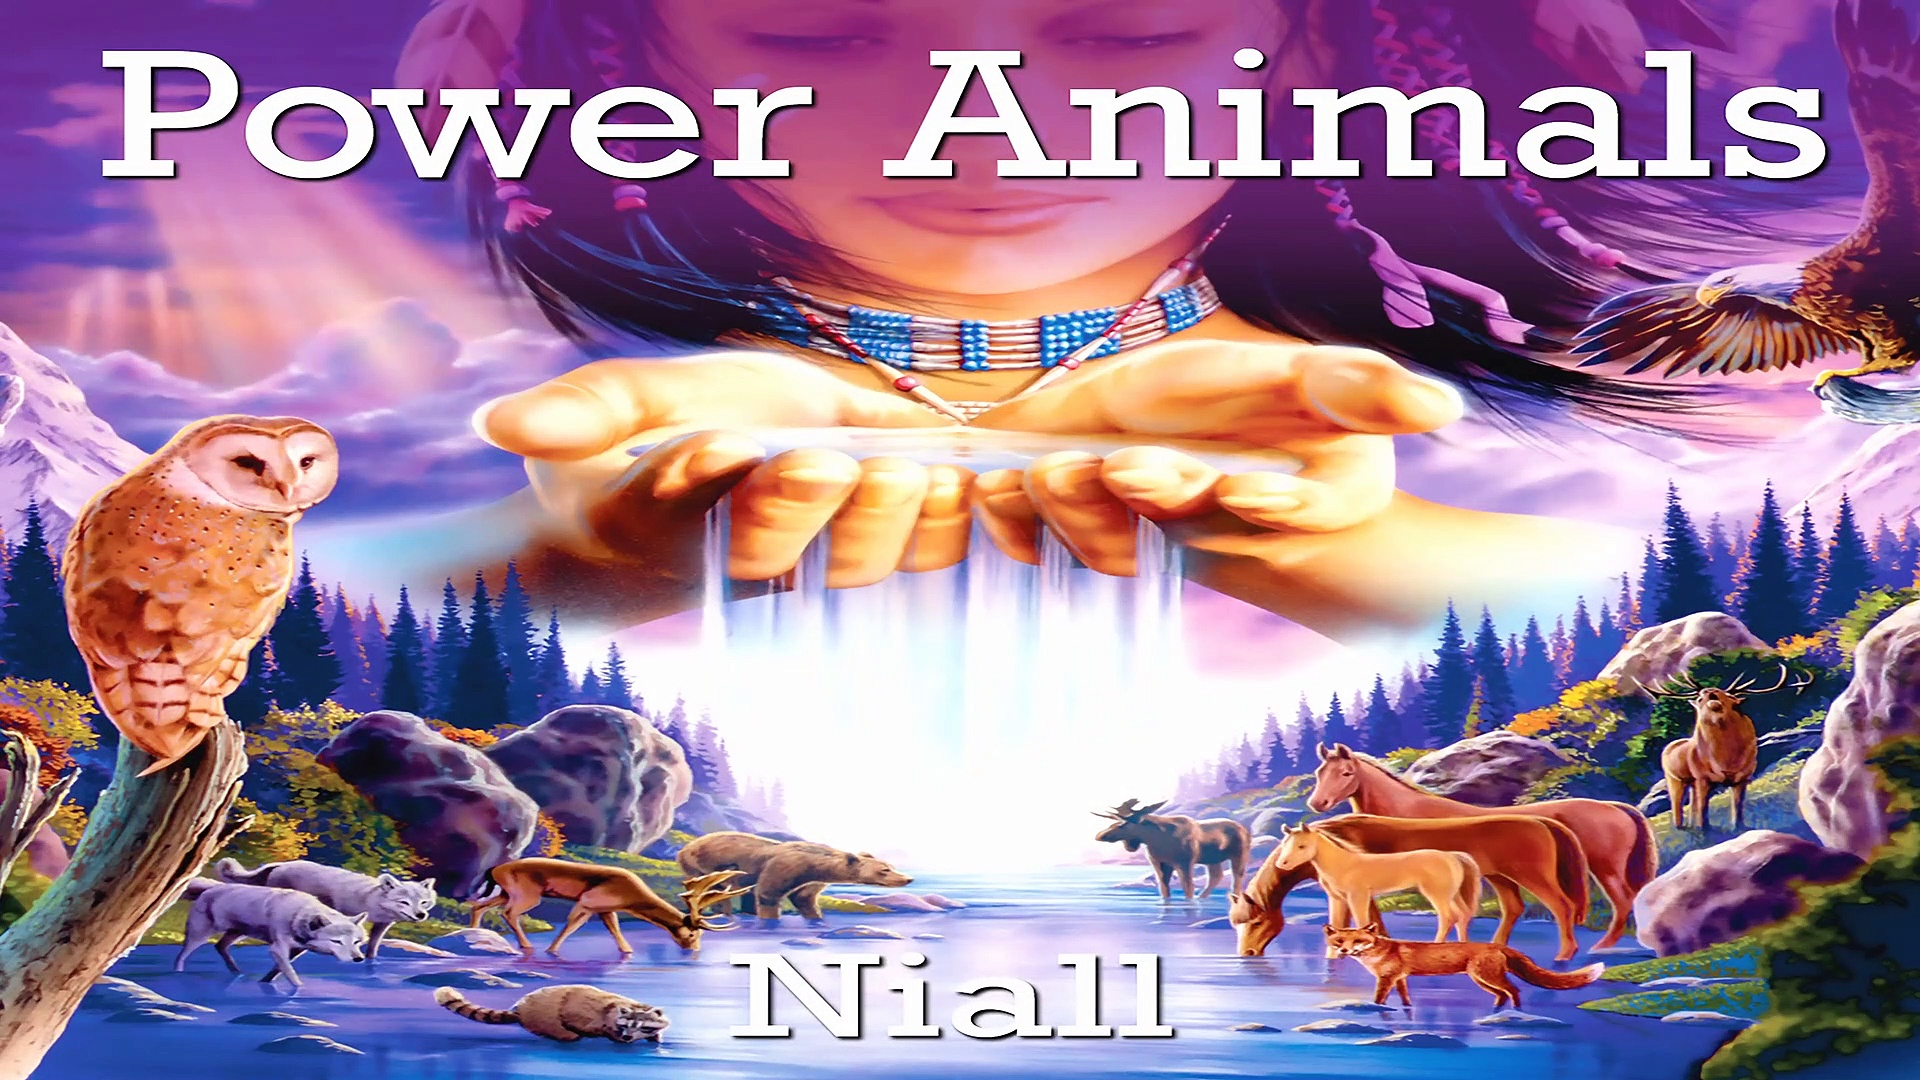 Power Animals – Native American Spiritual Music, Native Indian Flutes & Drums